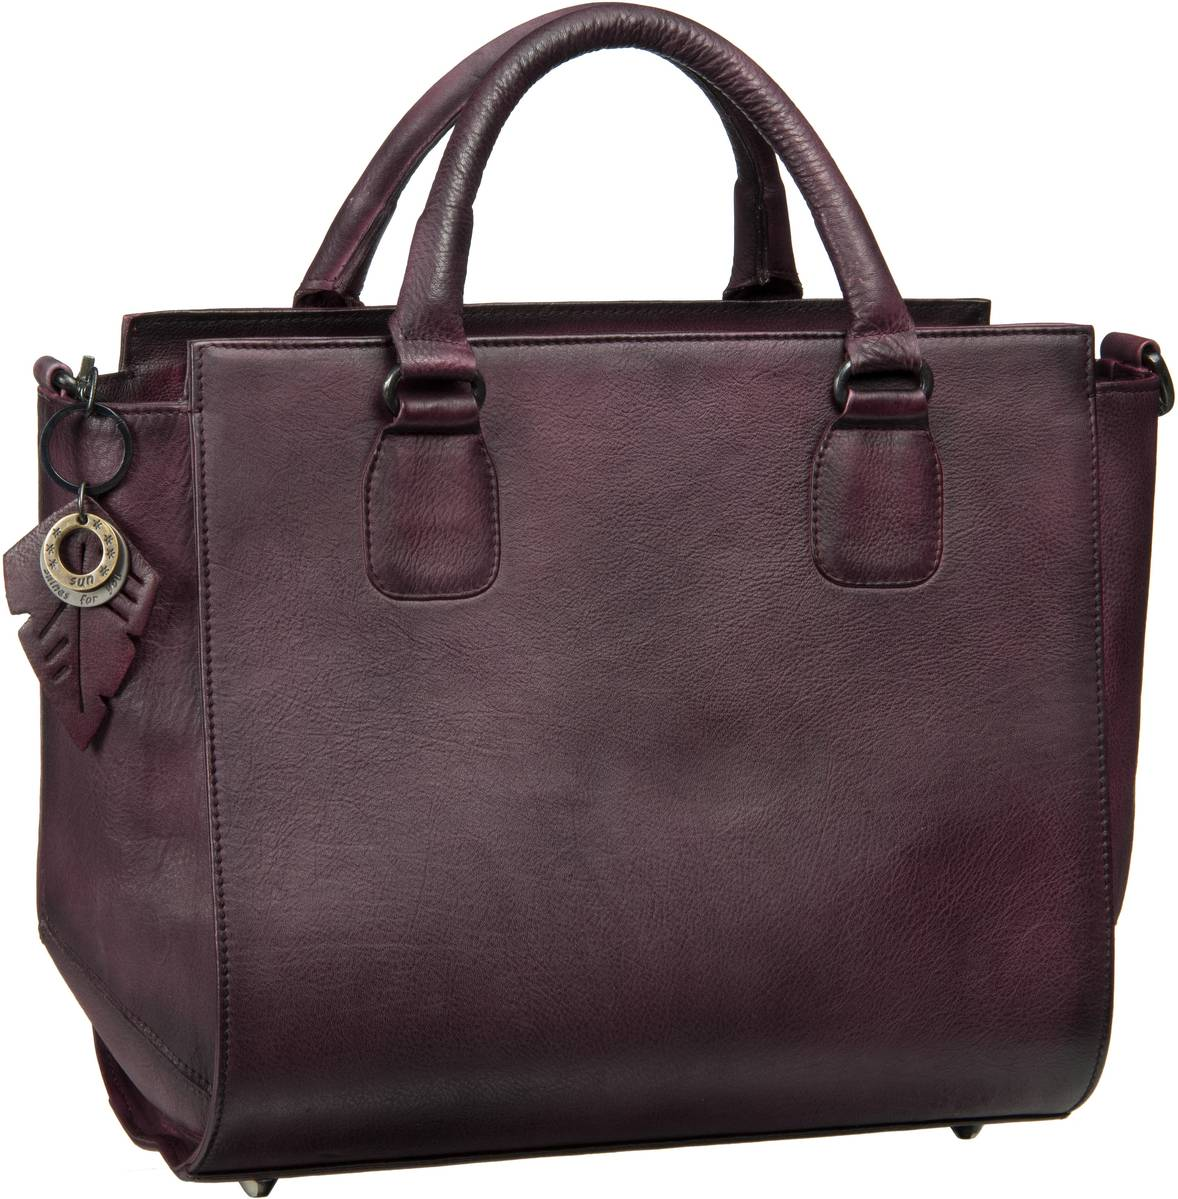 Legend Vasto Bordeaux - Handtasche